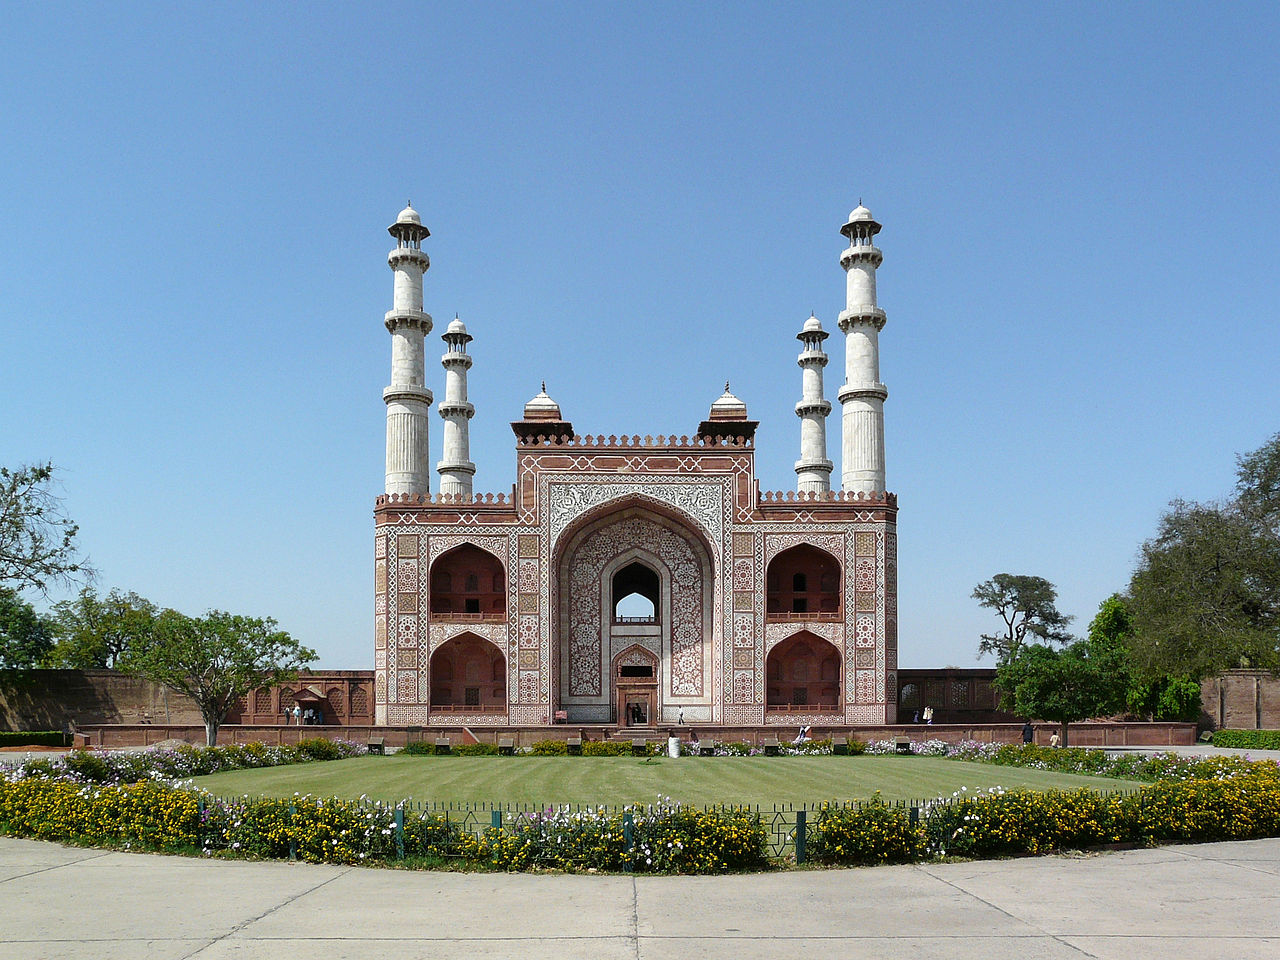 South gate of Akbar's Tomb, in Sikandra